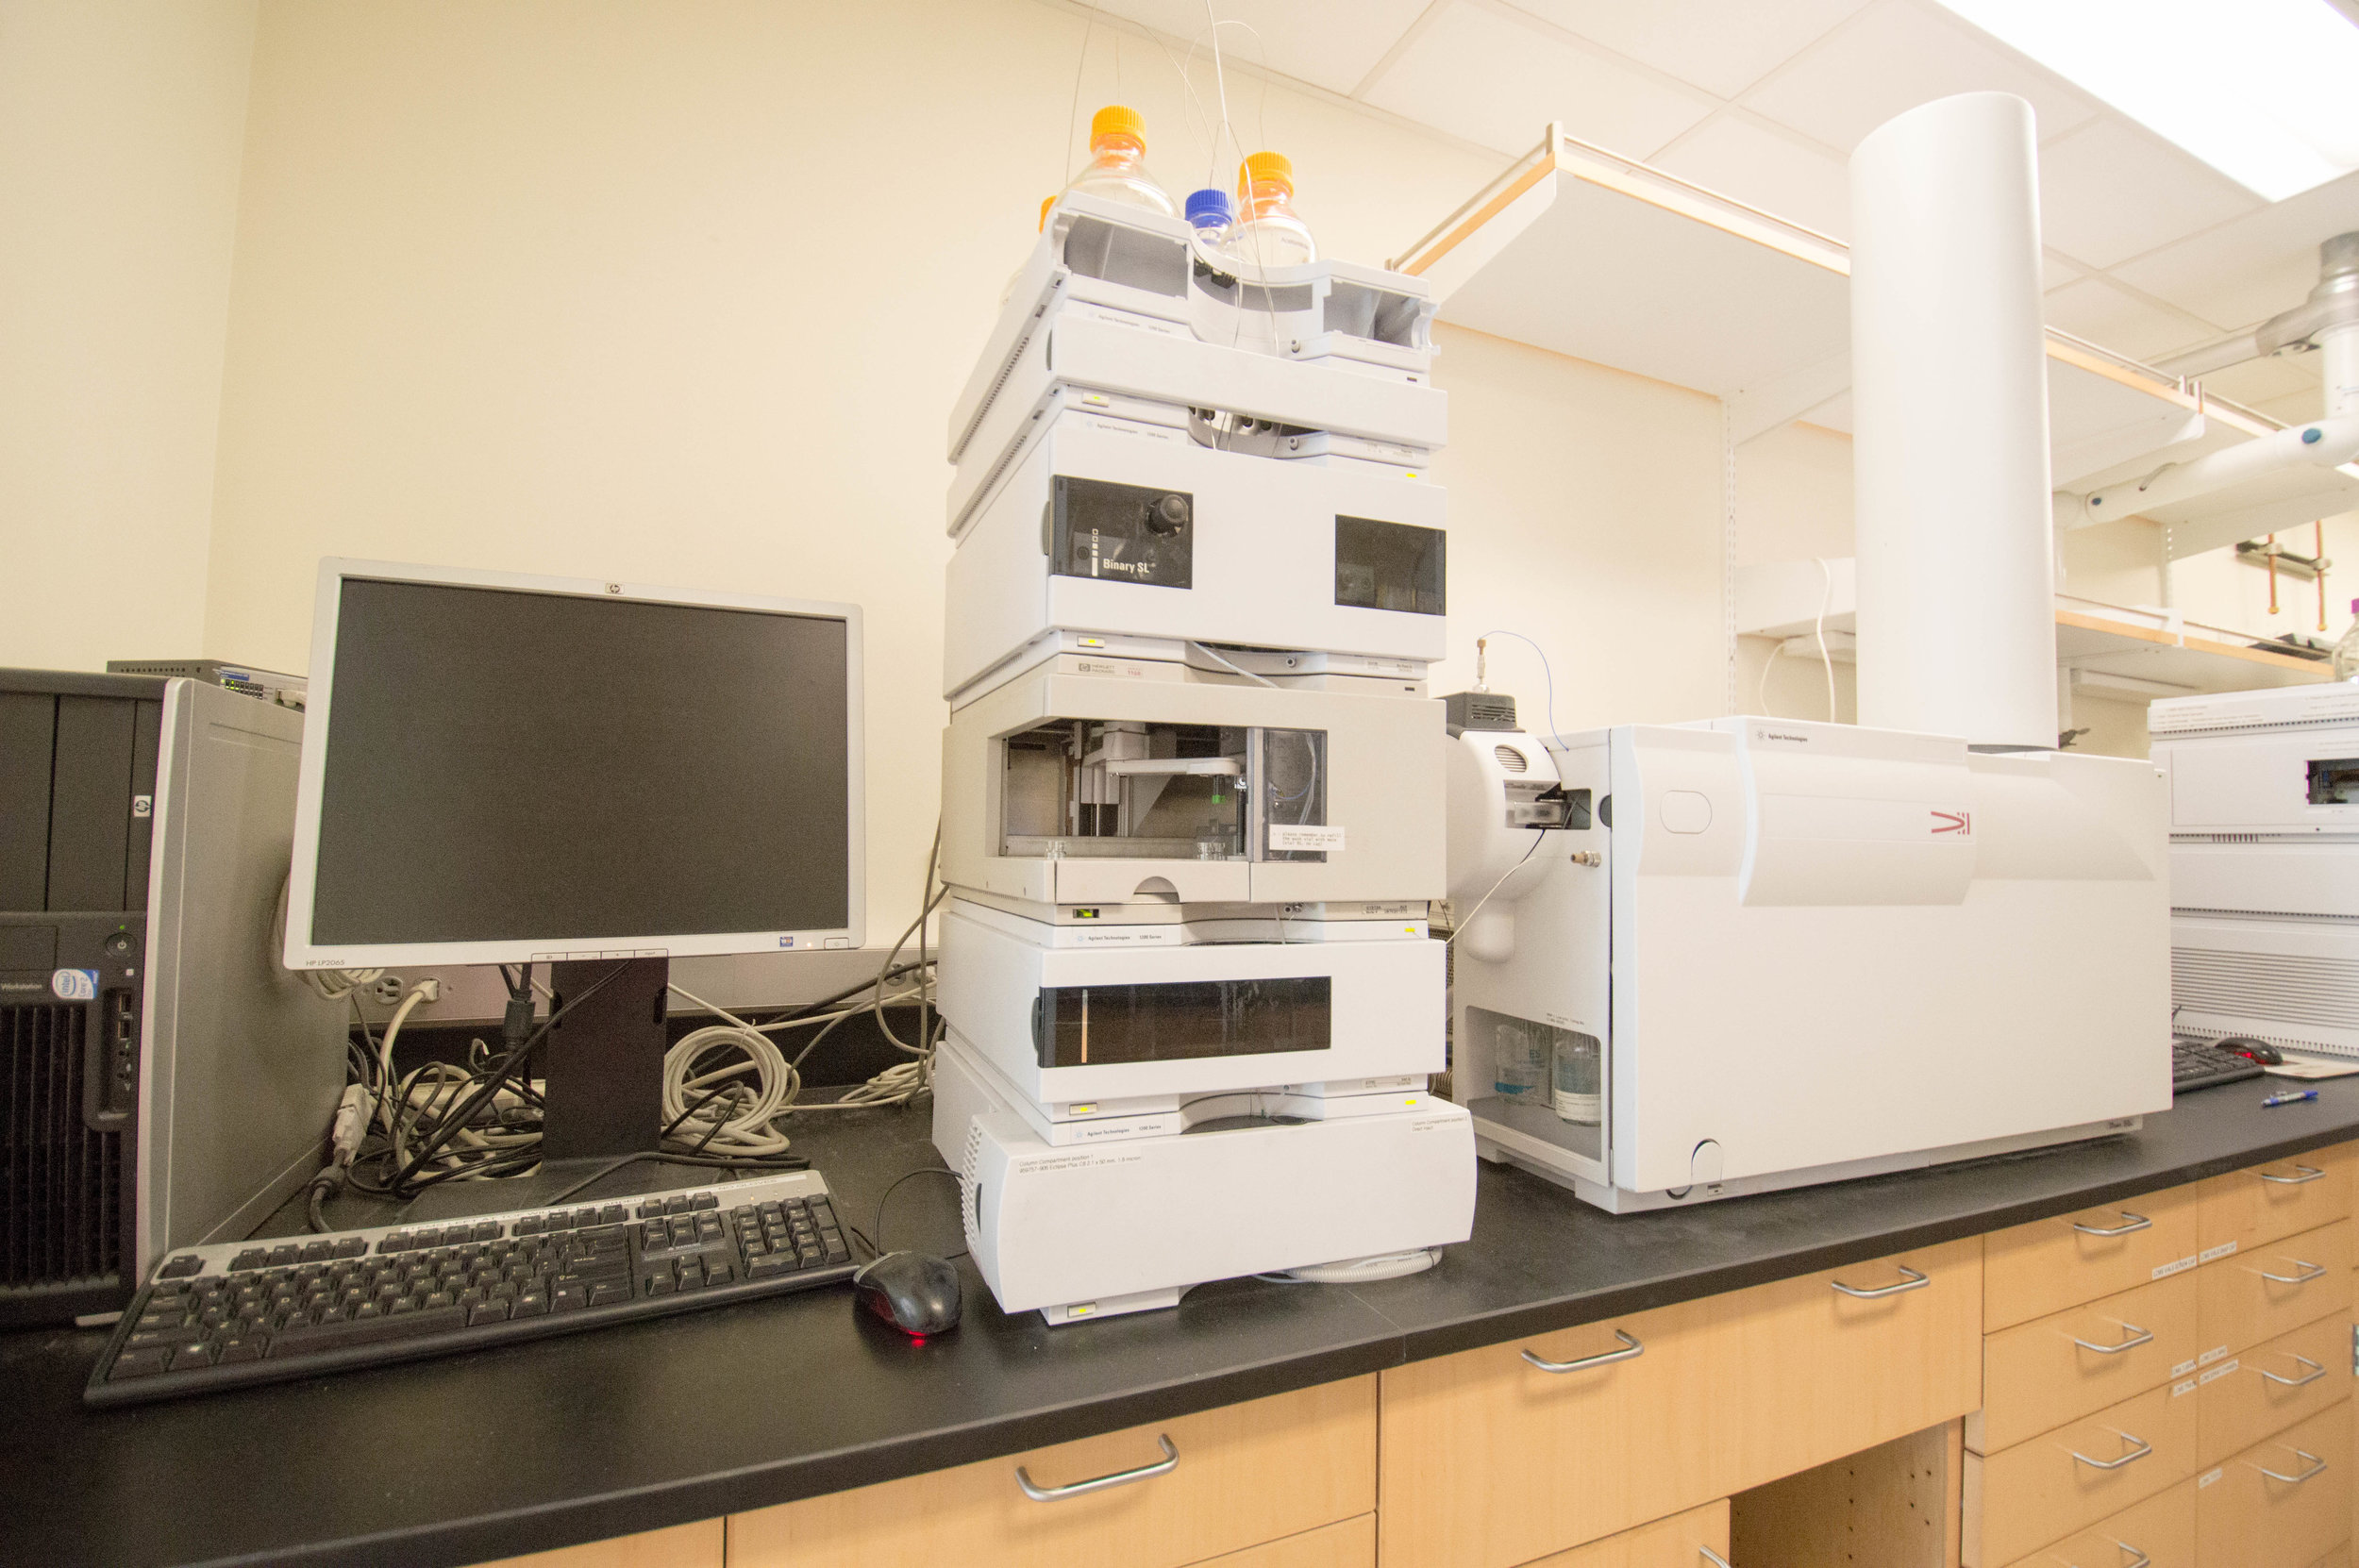 Our LC-MS (TOF), capable of obtaining high resolution mass spectra.